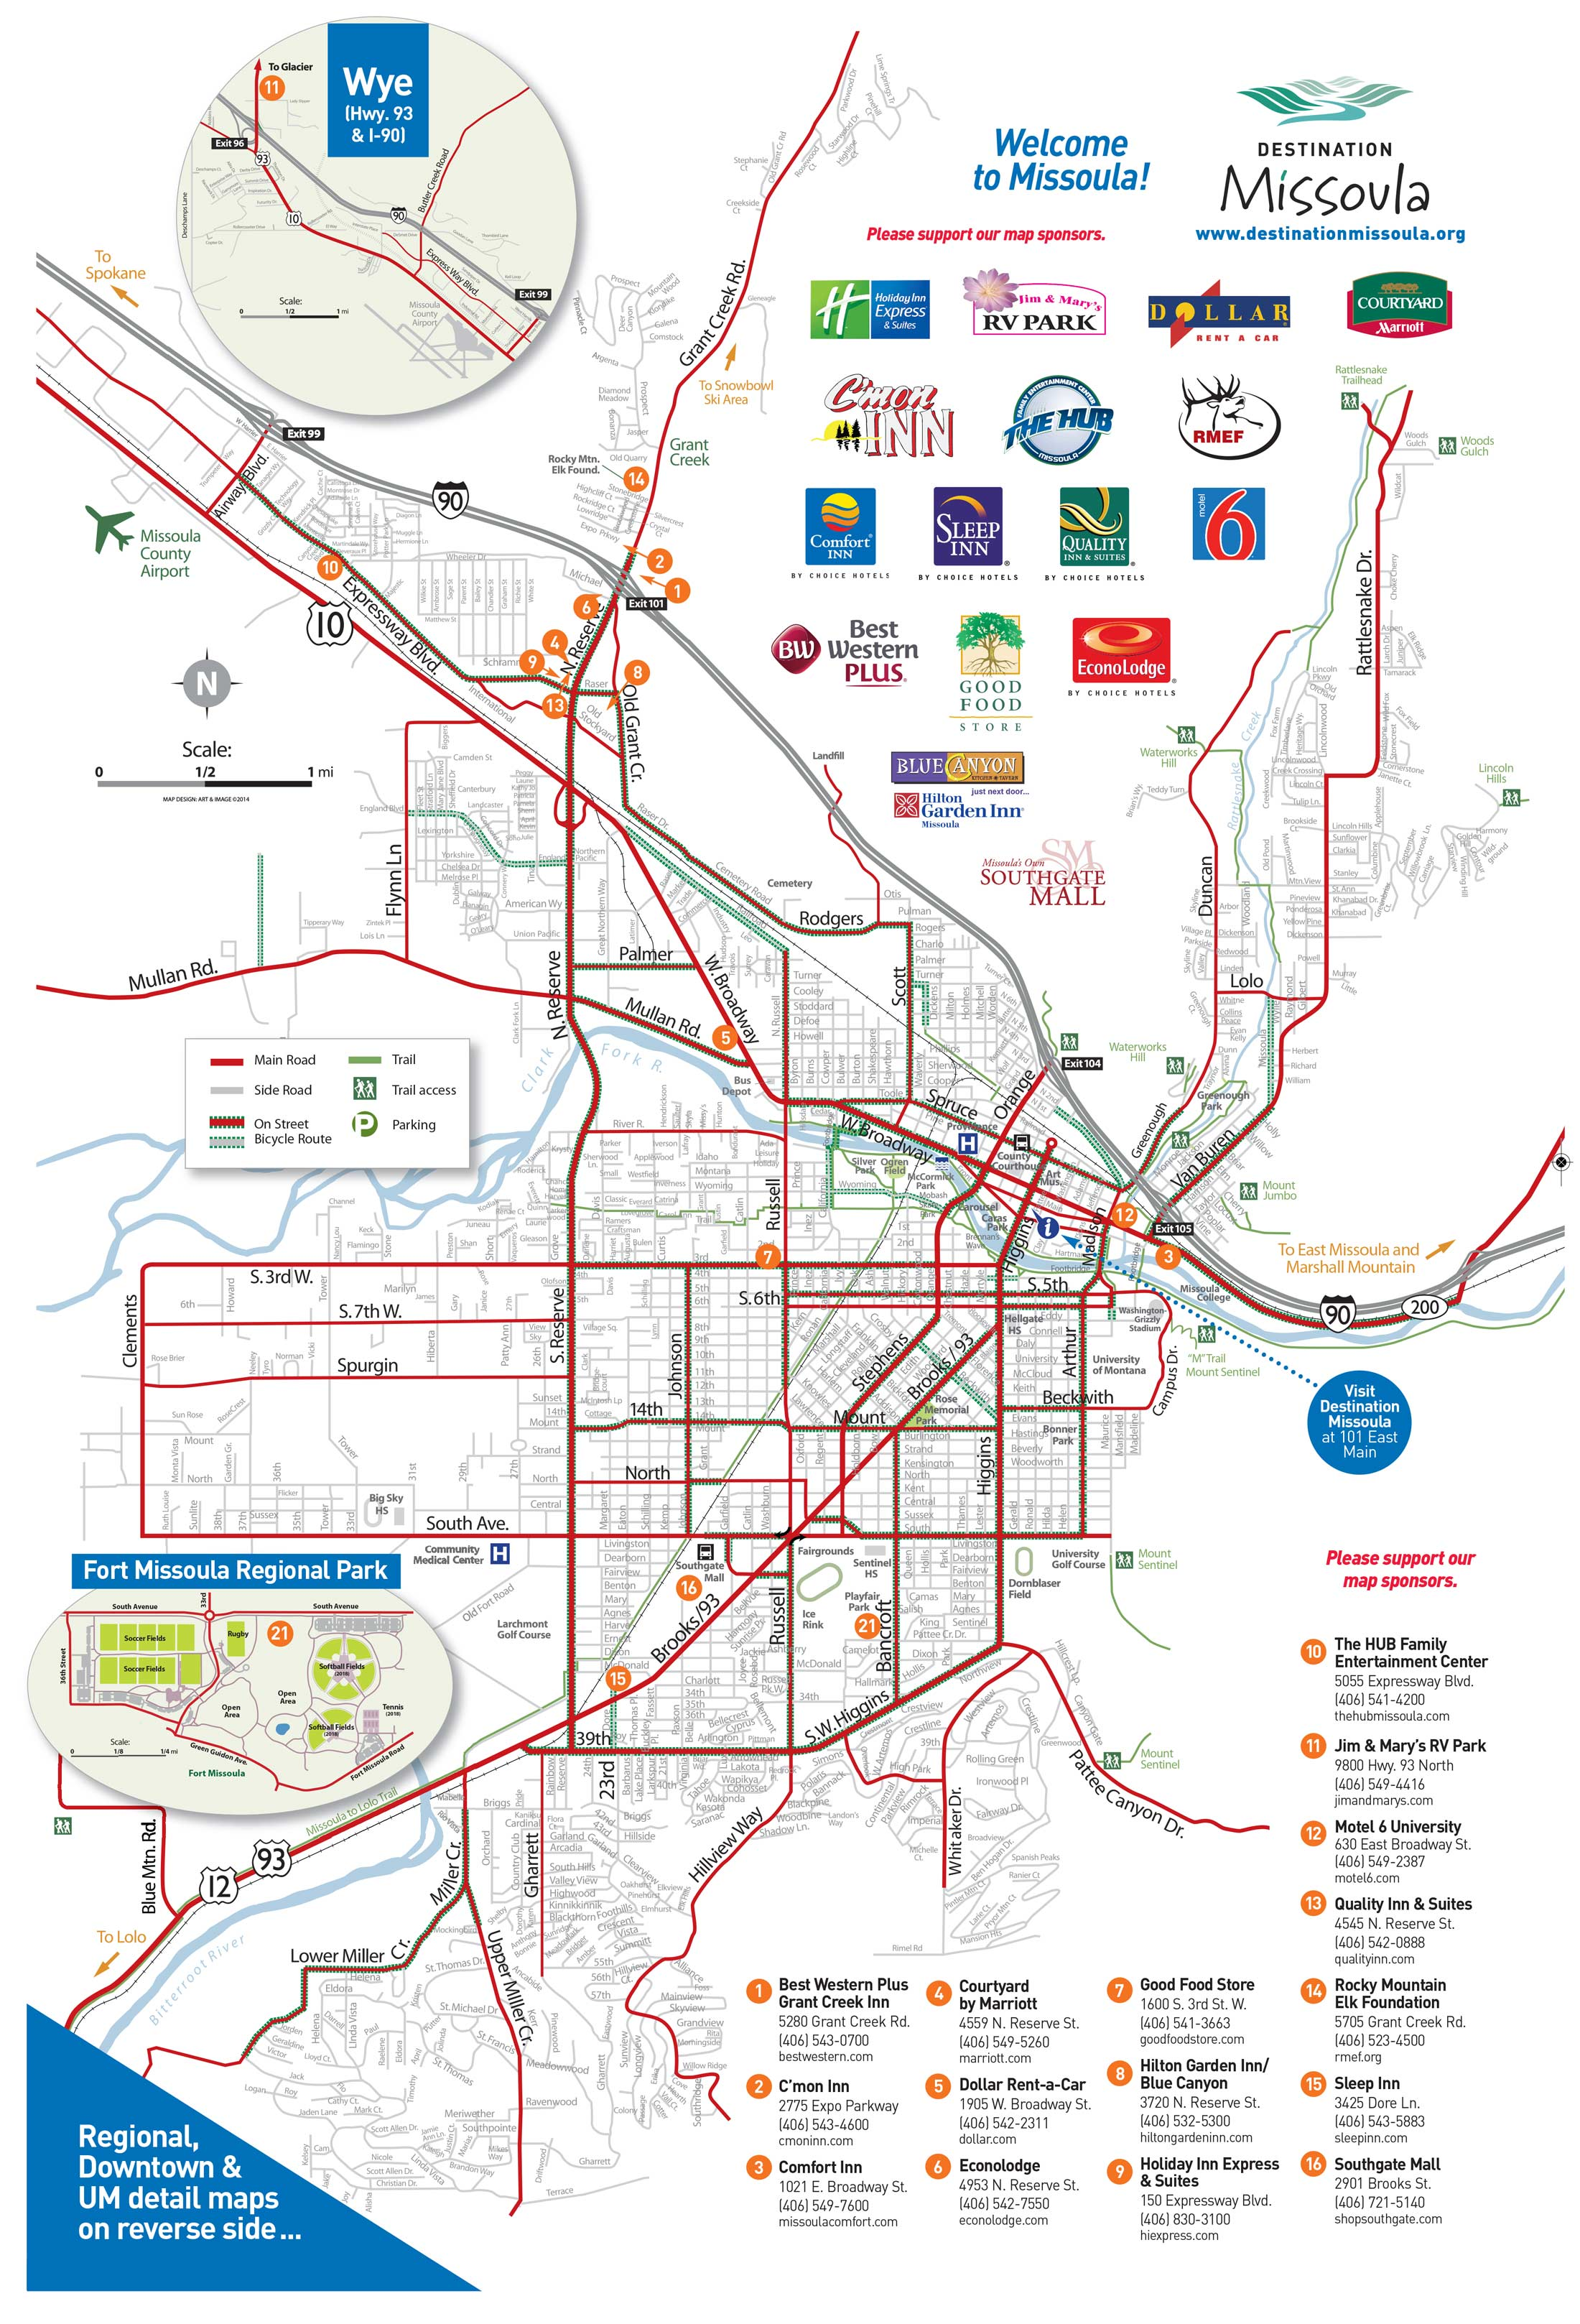 Interactive Map | Destination Missoula on